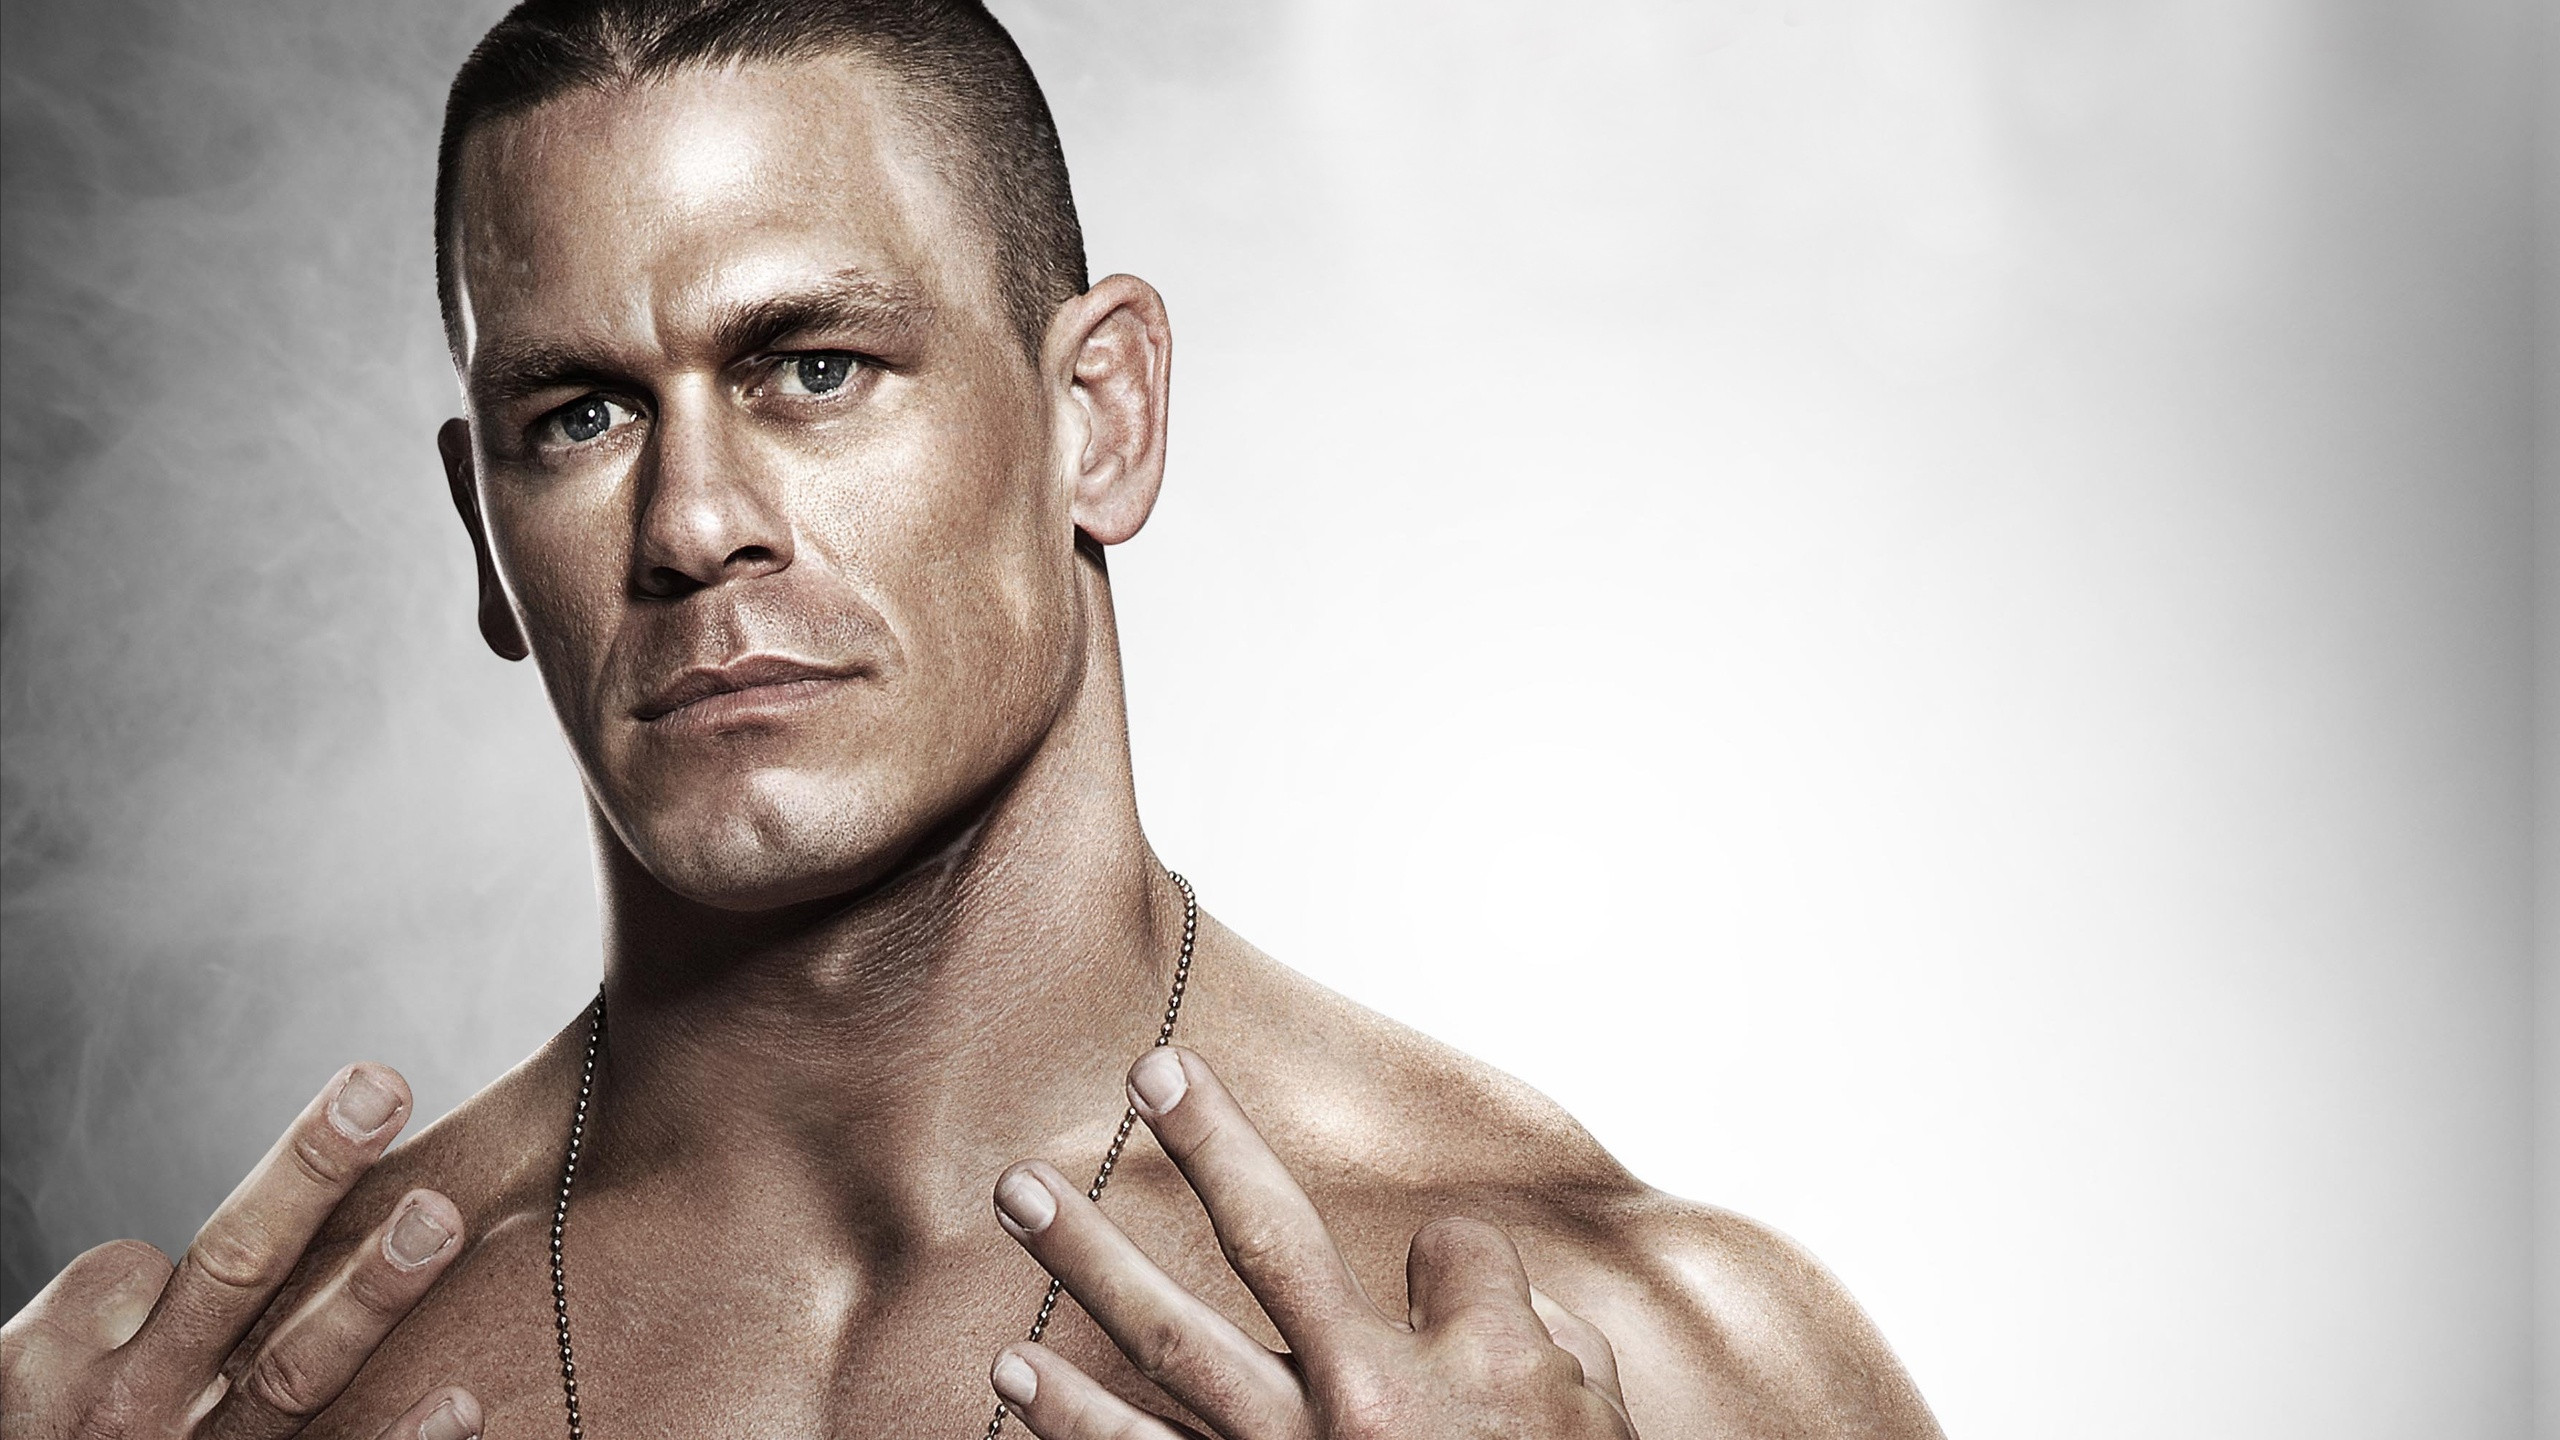 1920x1200 WWE World Heavyweight Champion John Cena Wallpaper 1920A 1200